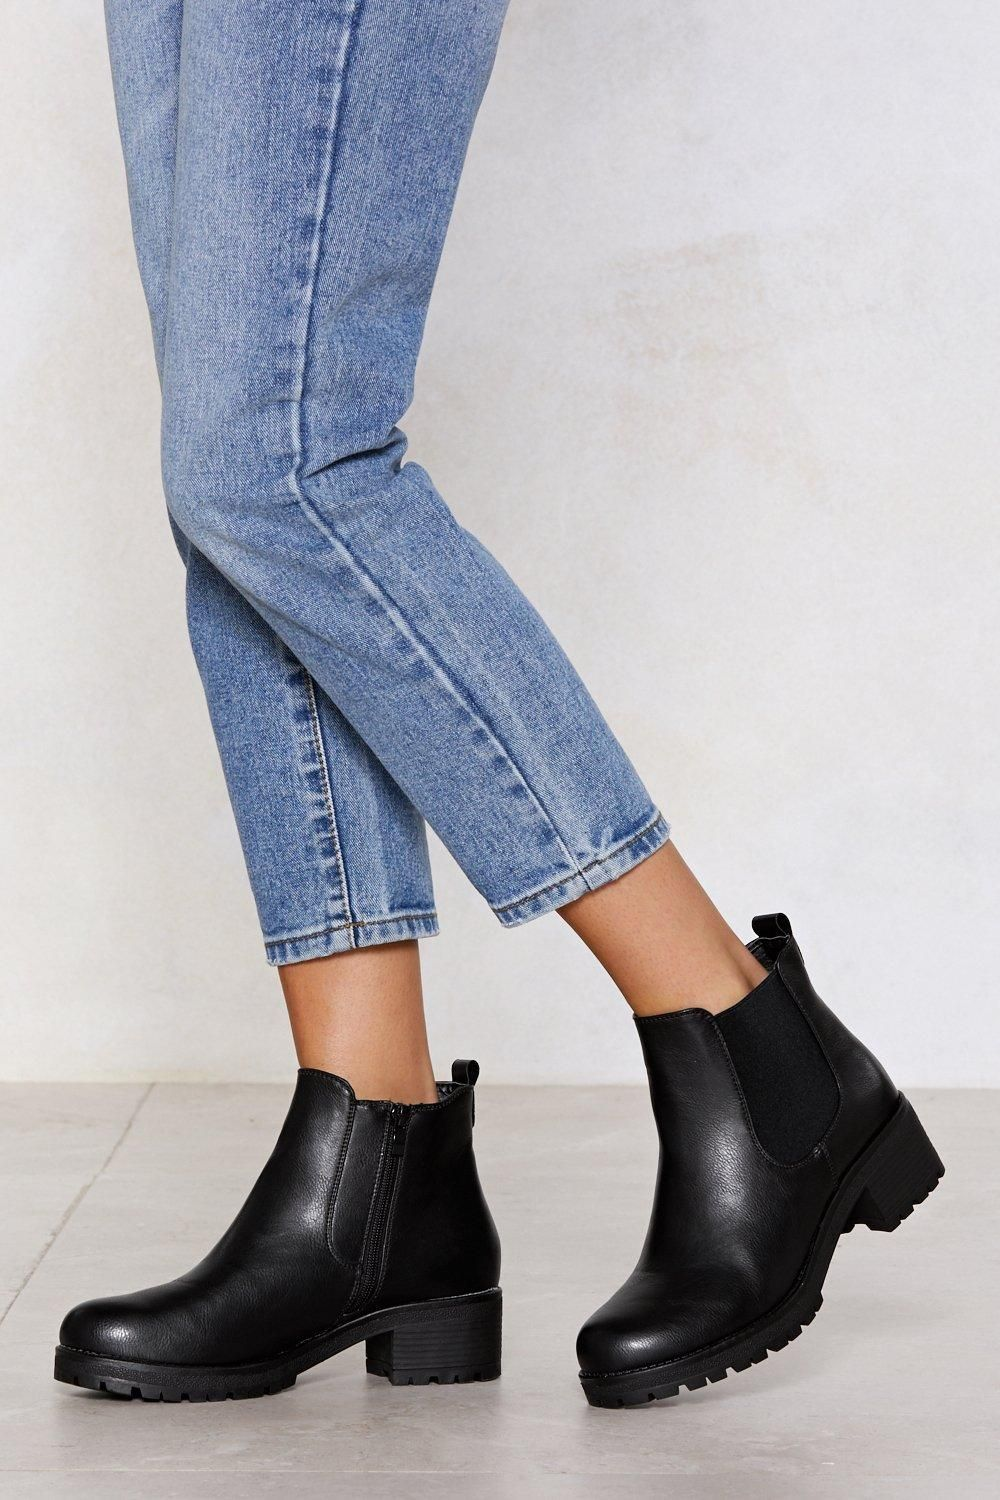 402c1e29555a The Follow in My Footsteps Boot comes in faux leather and features a round  toe